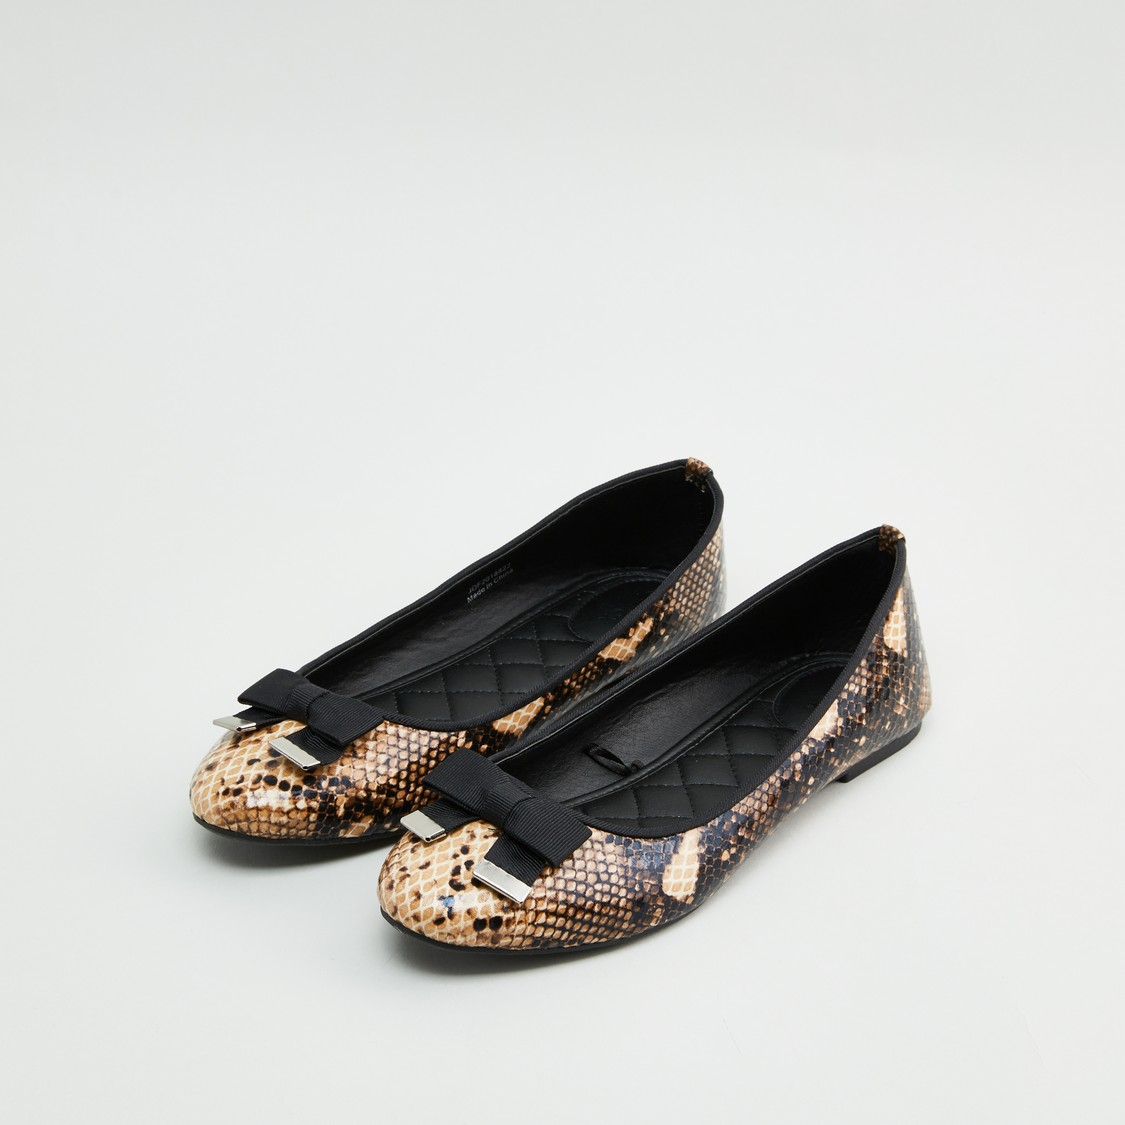 Animal Textured Ballerinas with Bow